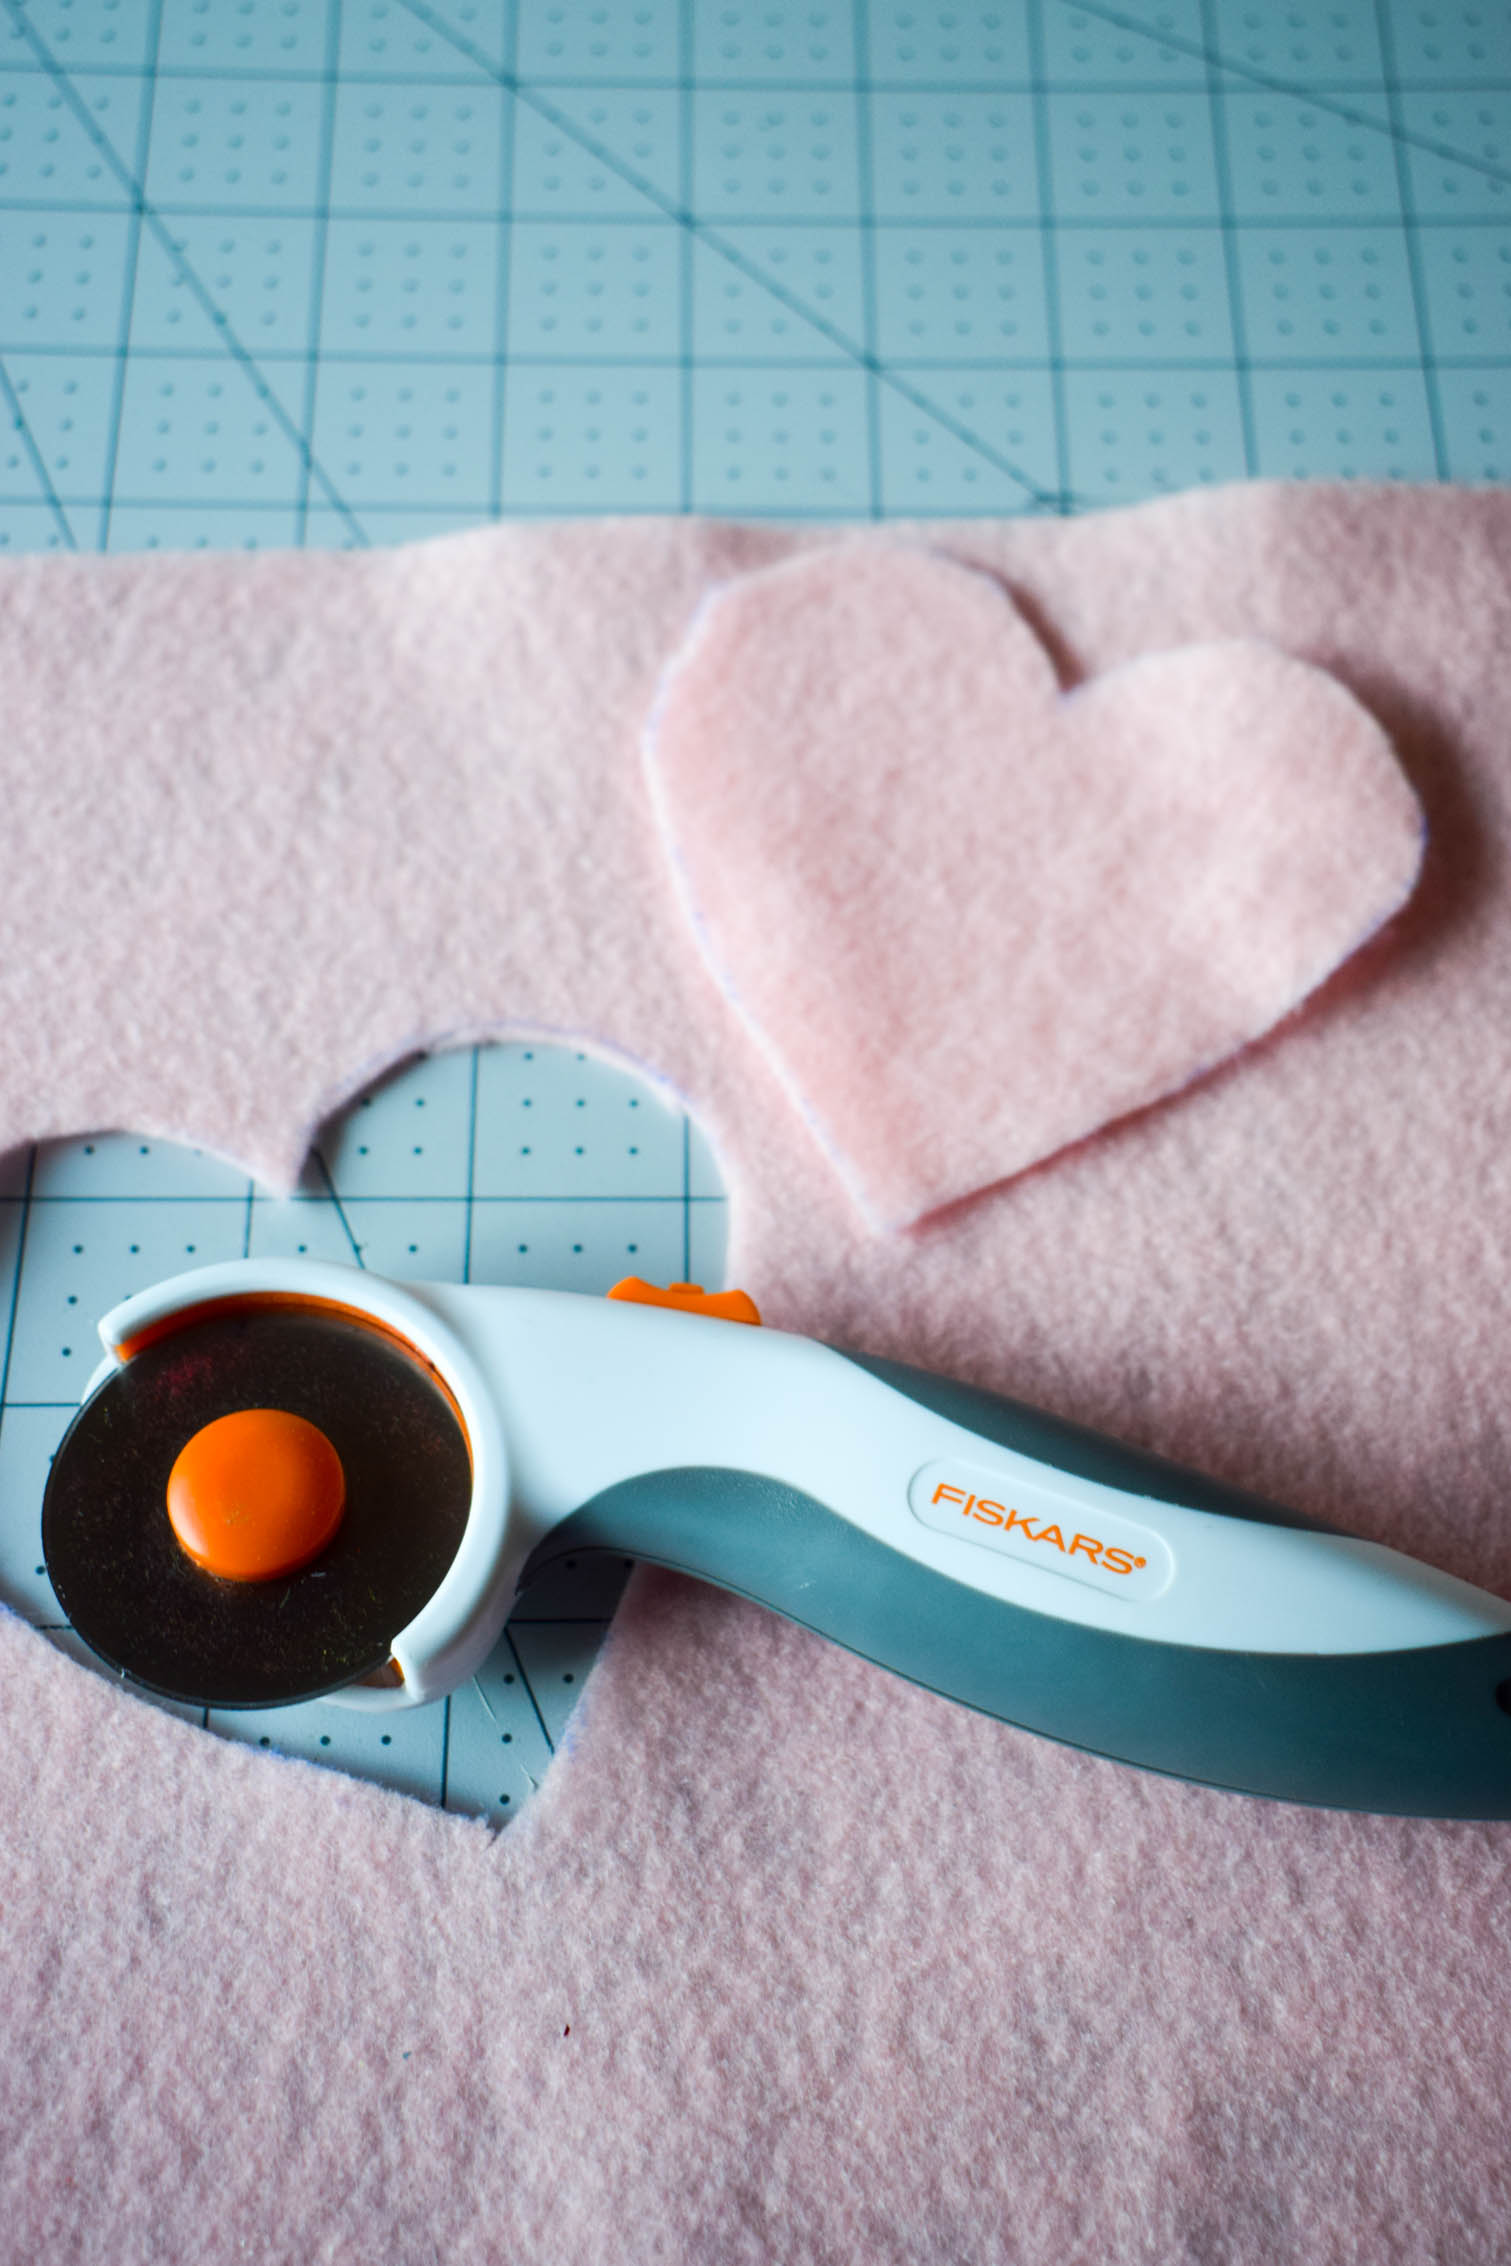 DIY Heart elbow patches are the easiest way to refashion a sweater. Using felt and a needle + thread, you can add adorable style in a few minutes to any top